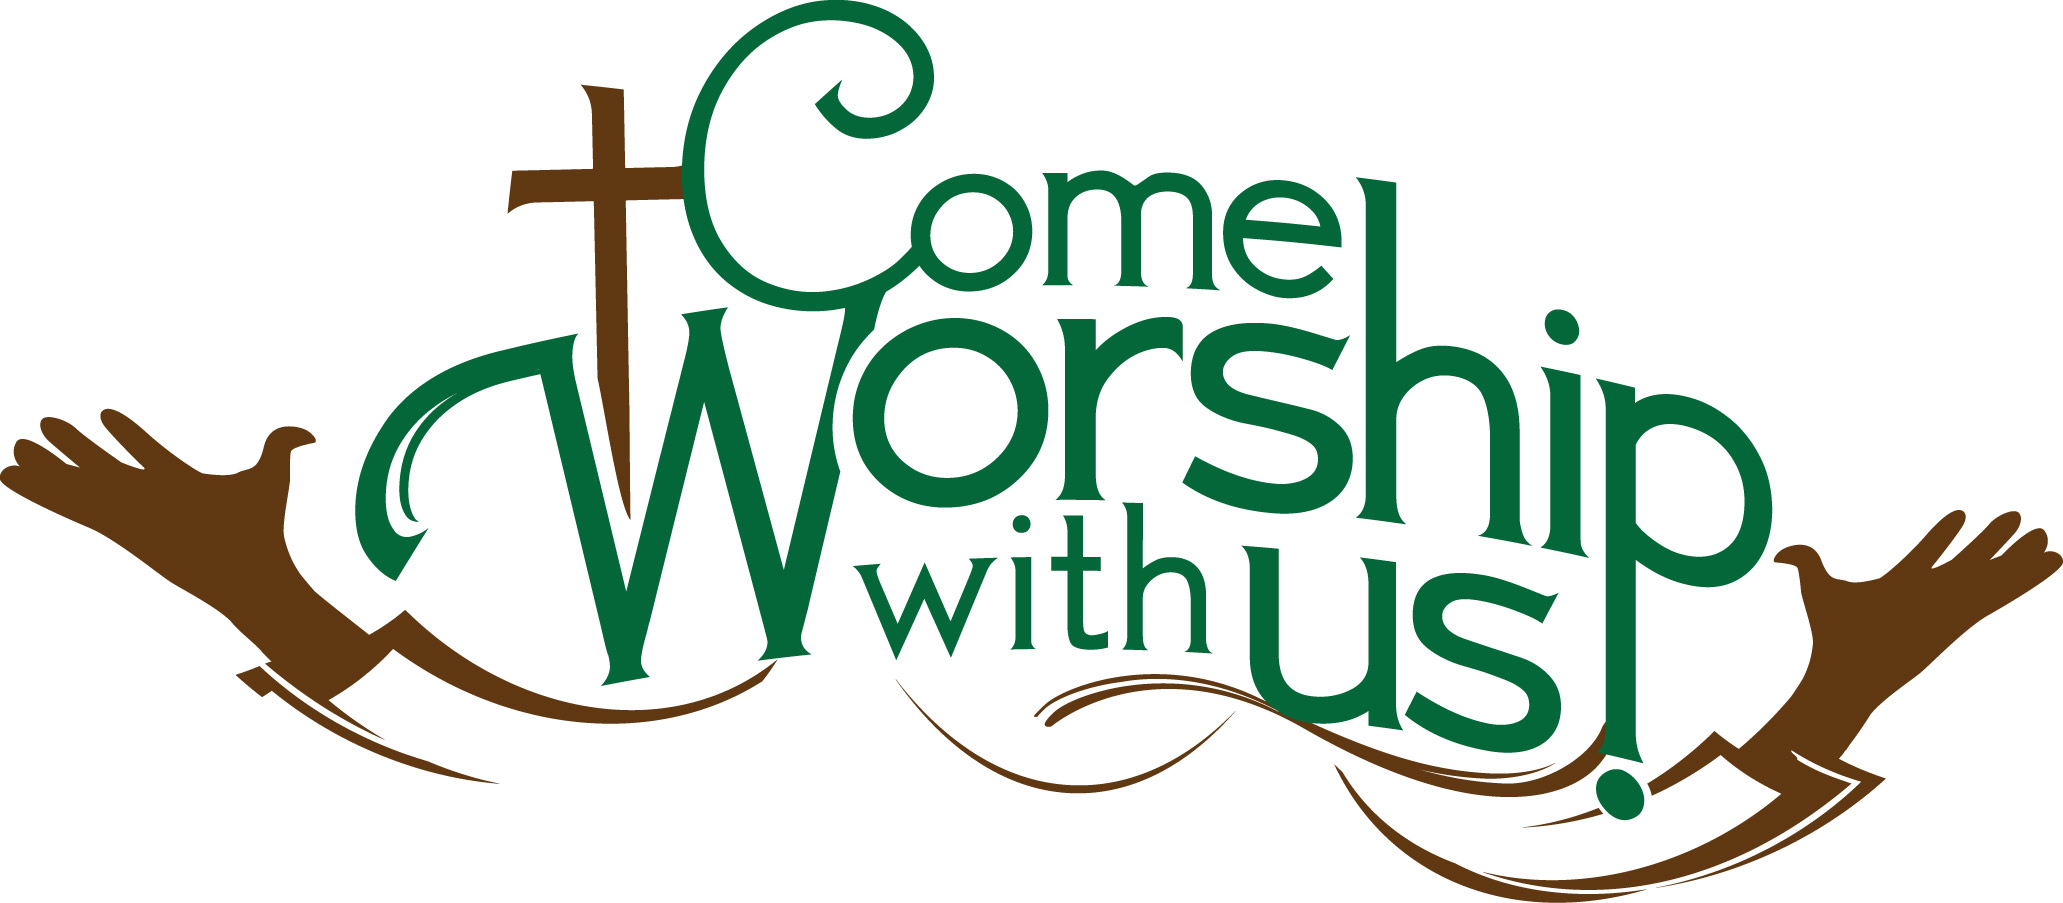 Worship Clipart & Worship Clip Art Images.